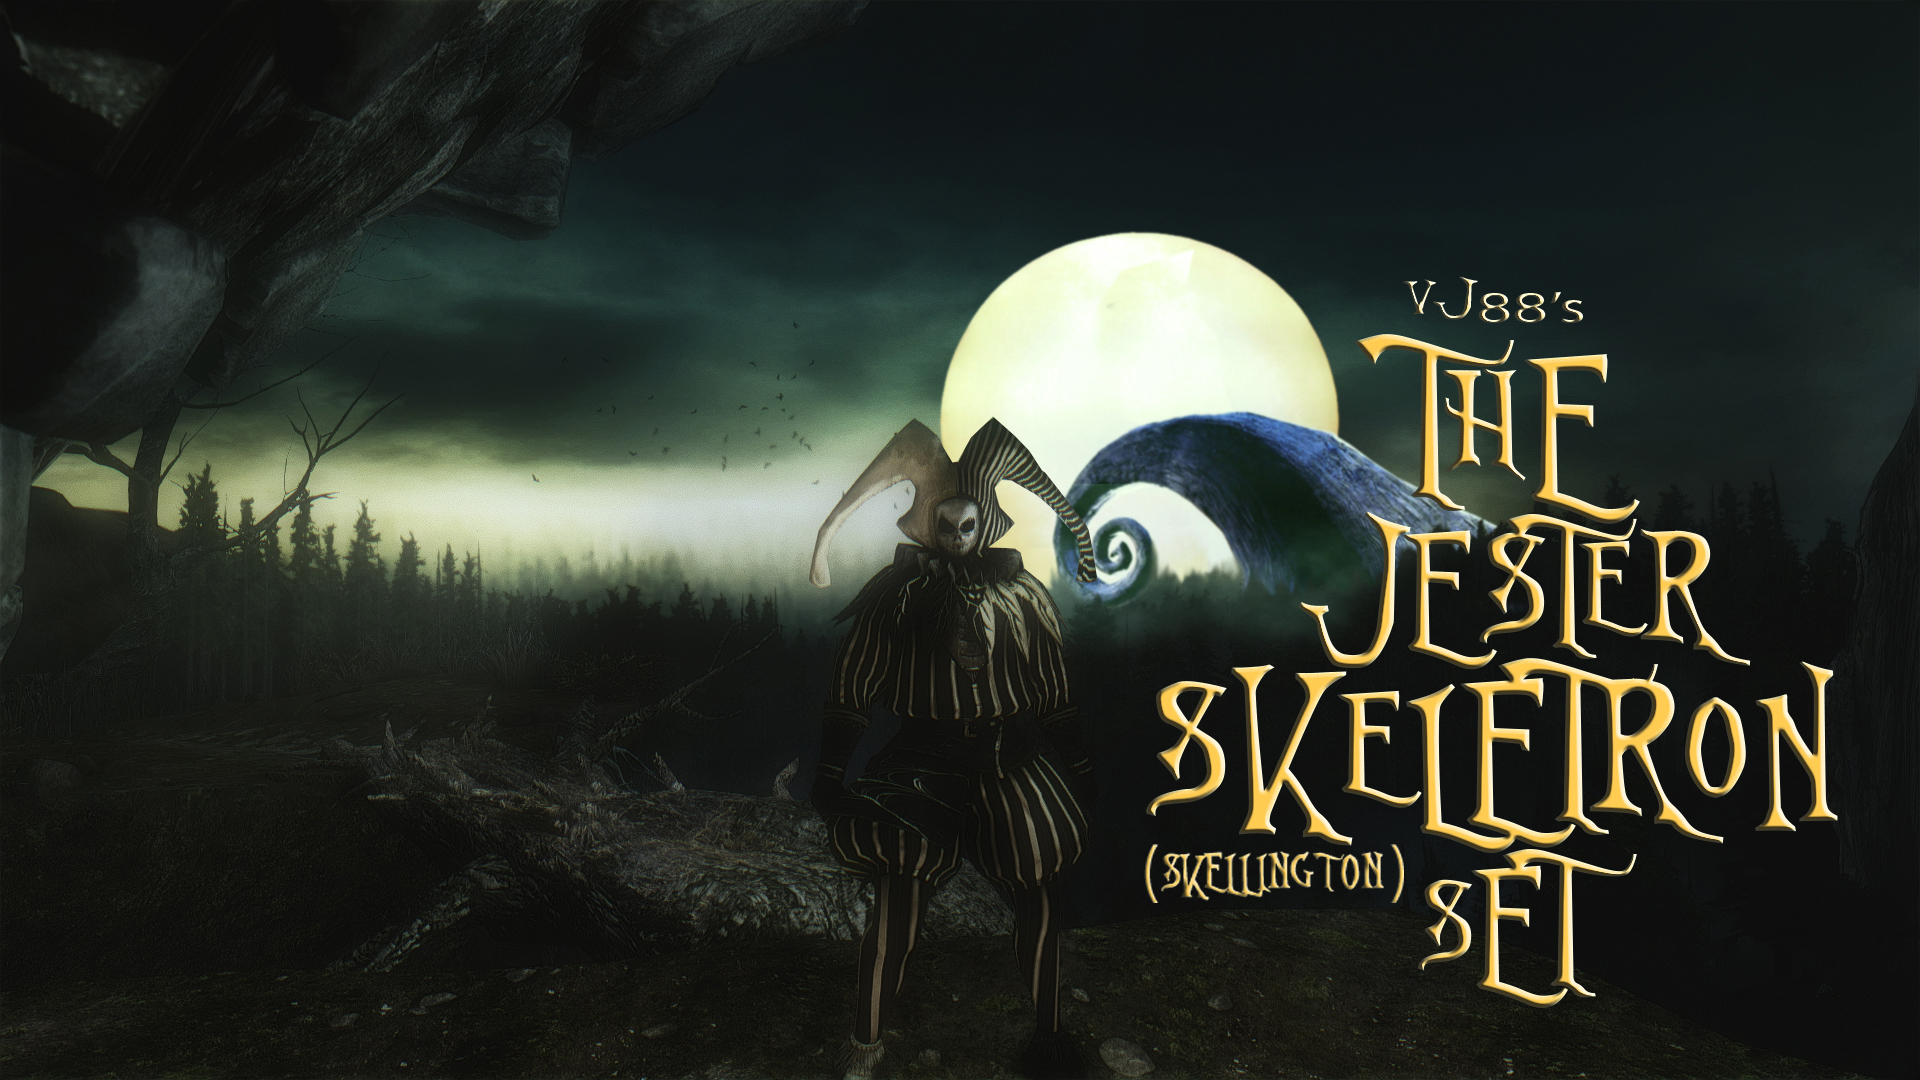 The Jester Skellington (Skeletron) Set - The Nightmare Before ...